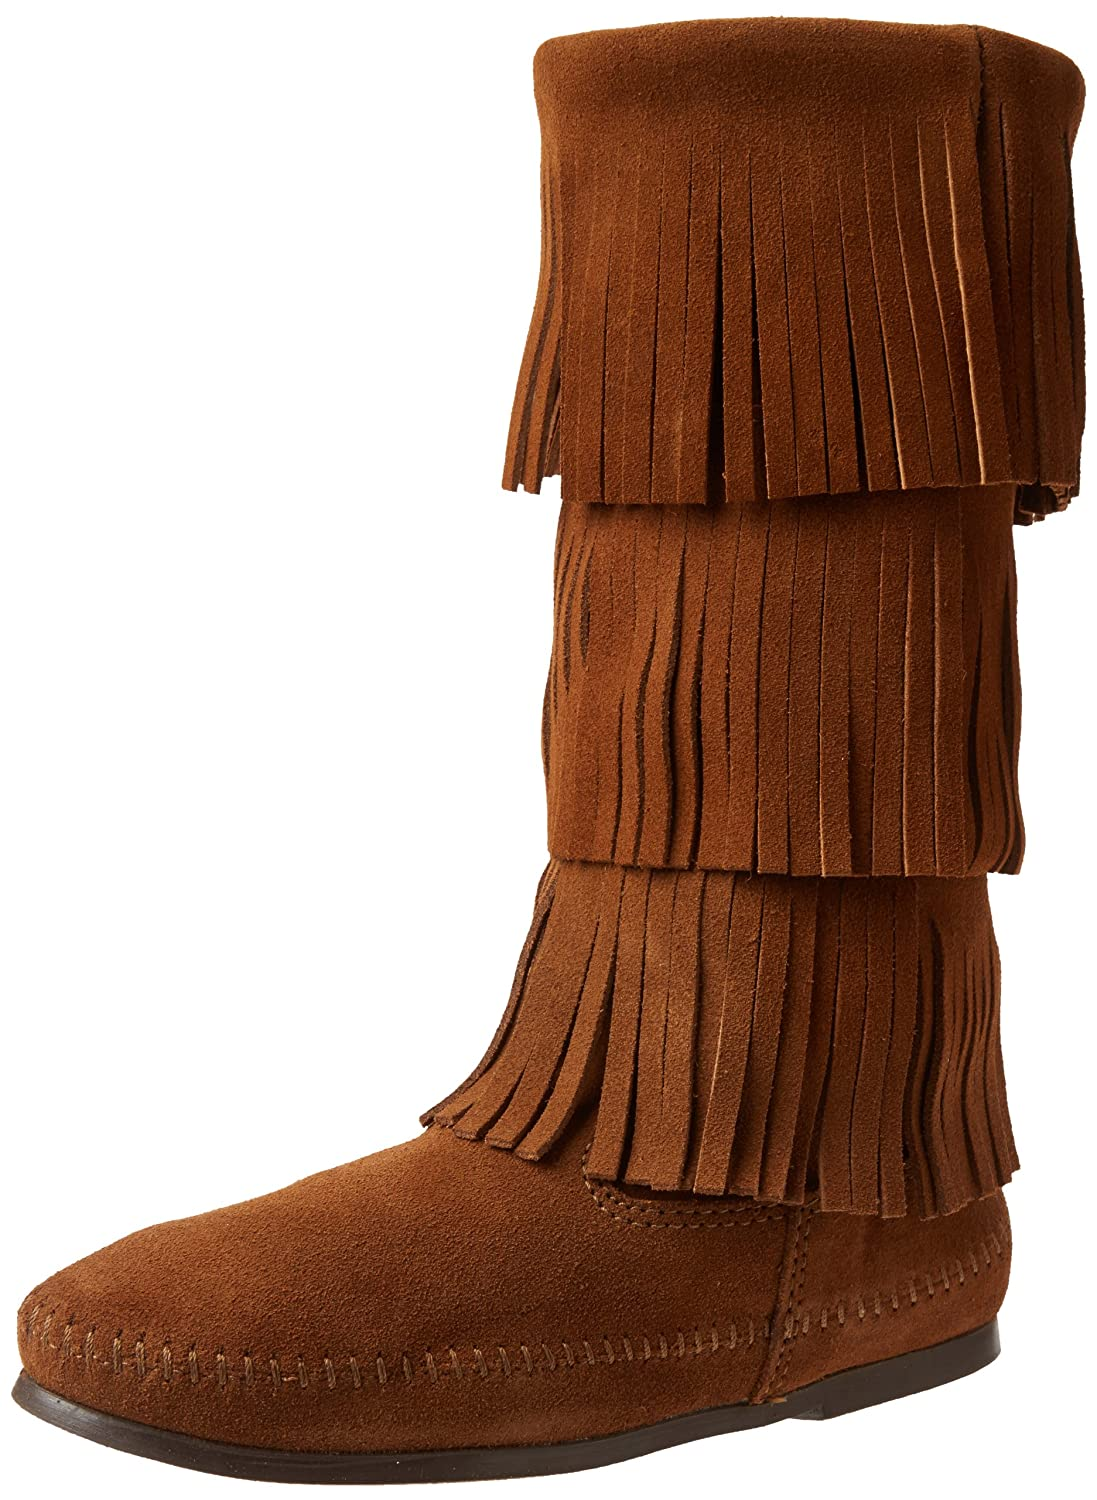 Minnetonka Women's Calf Hi 3-Layer Fringe Boot B00742F9NA 12 B(M) US|Dusty Brown